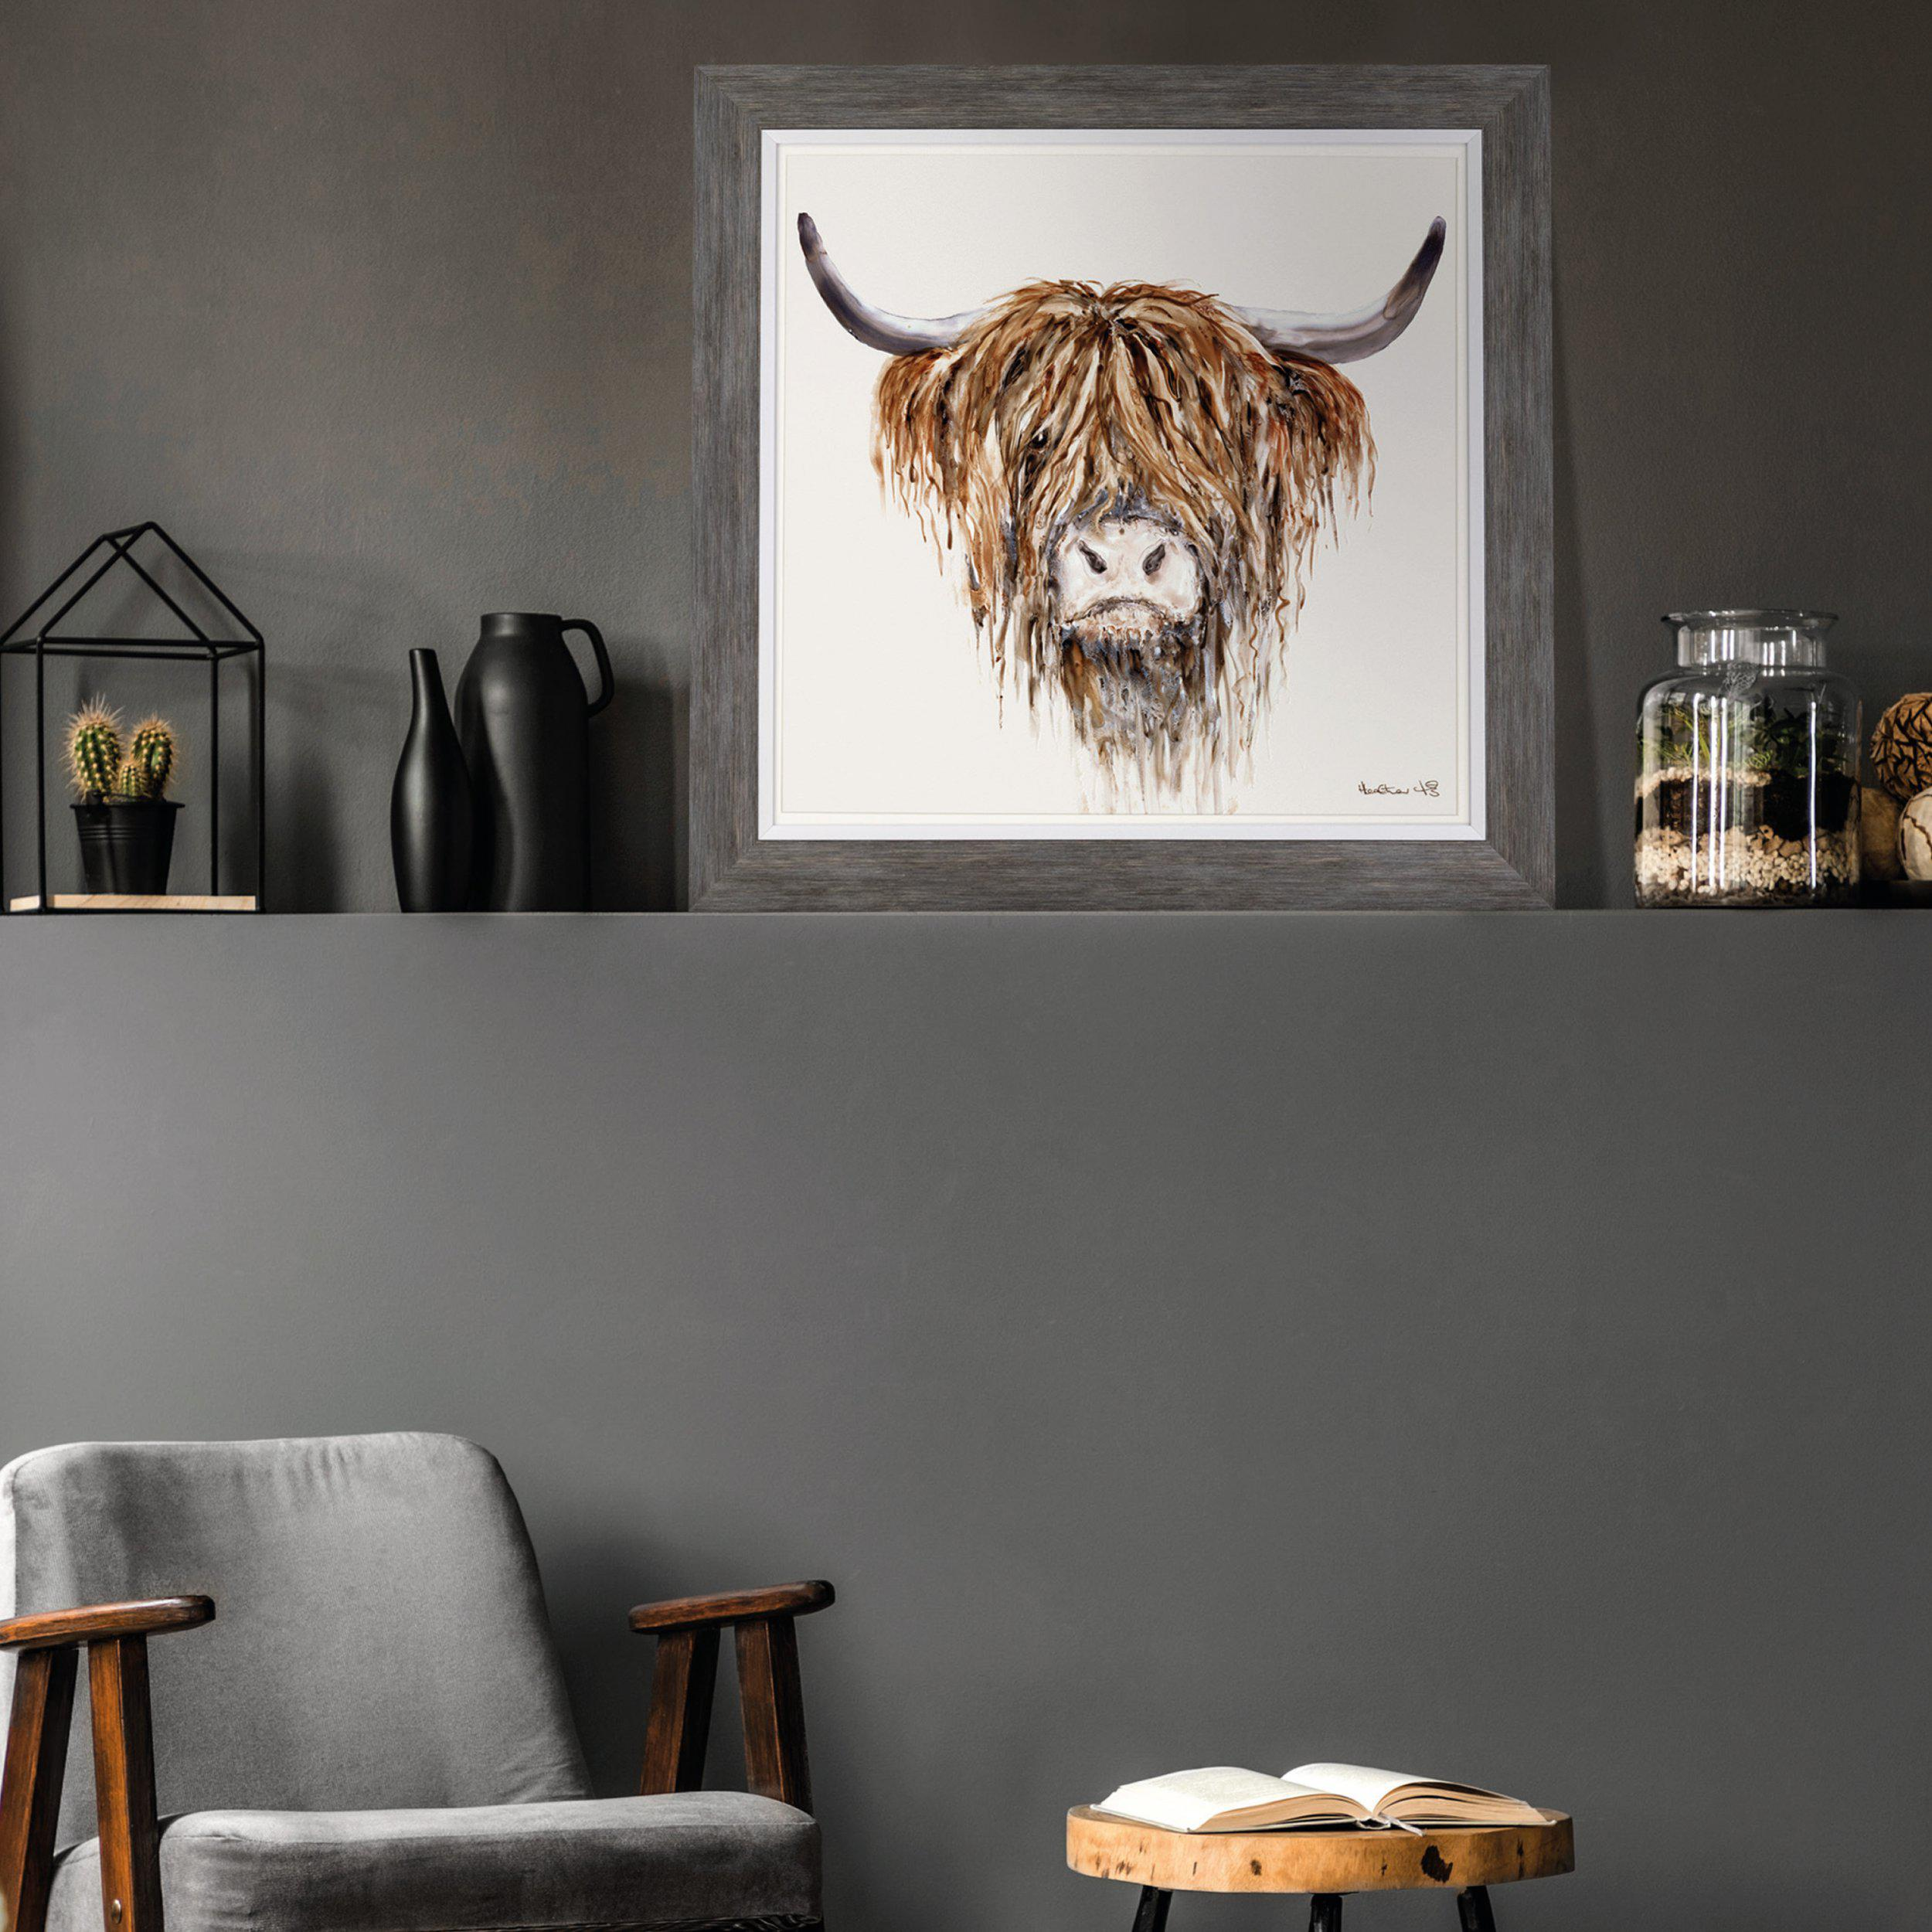 Art Gallery - Highland Cattle Painting - Freddie - Artist Heather Fitz - Large Framed Print For Sale - Room Display